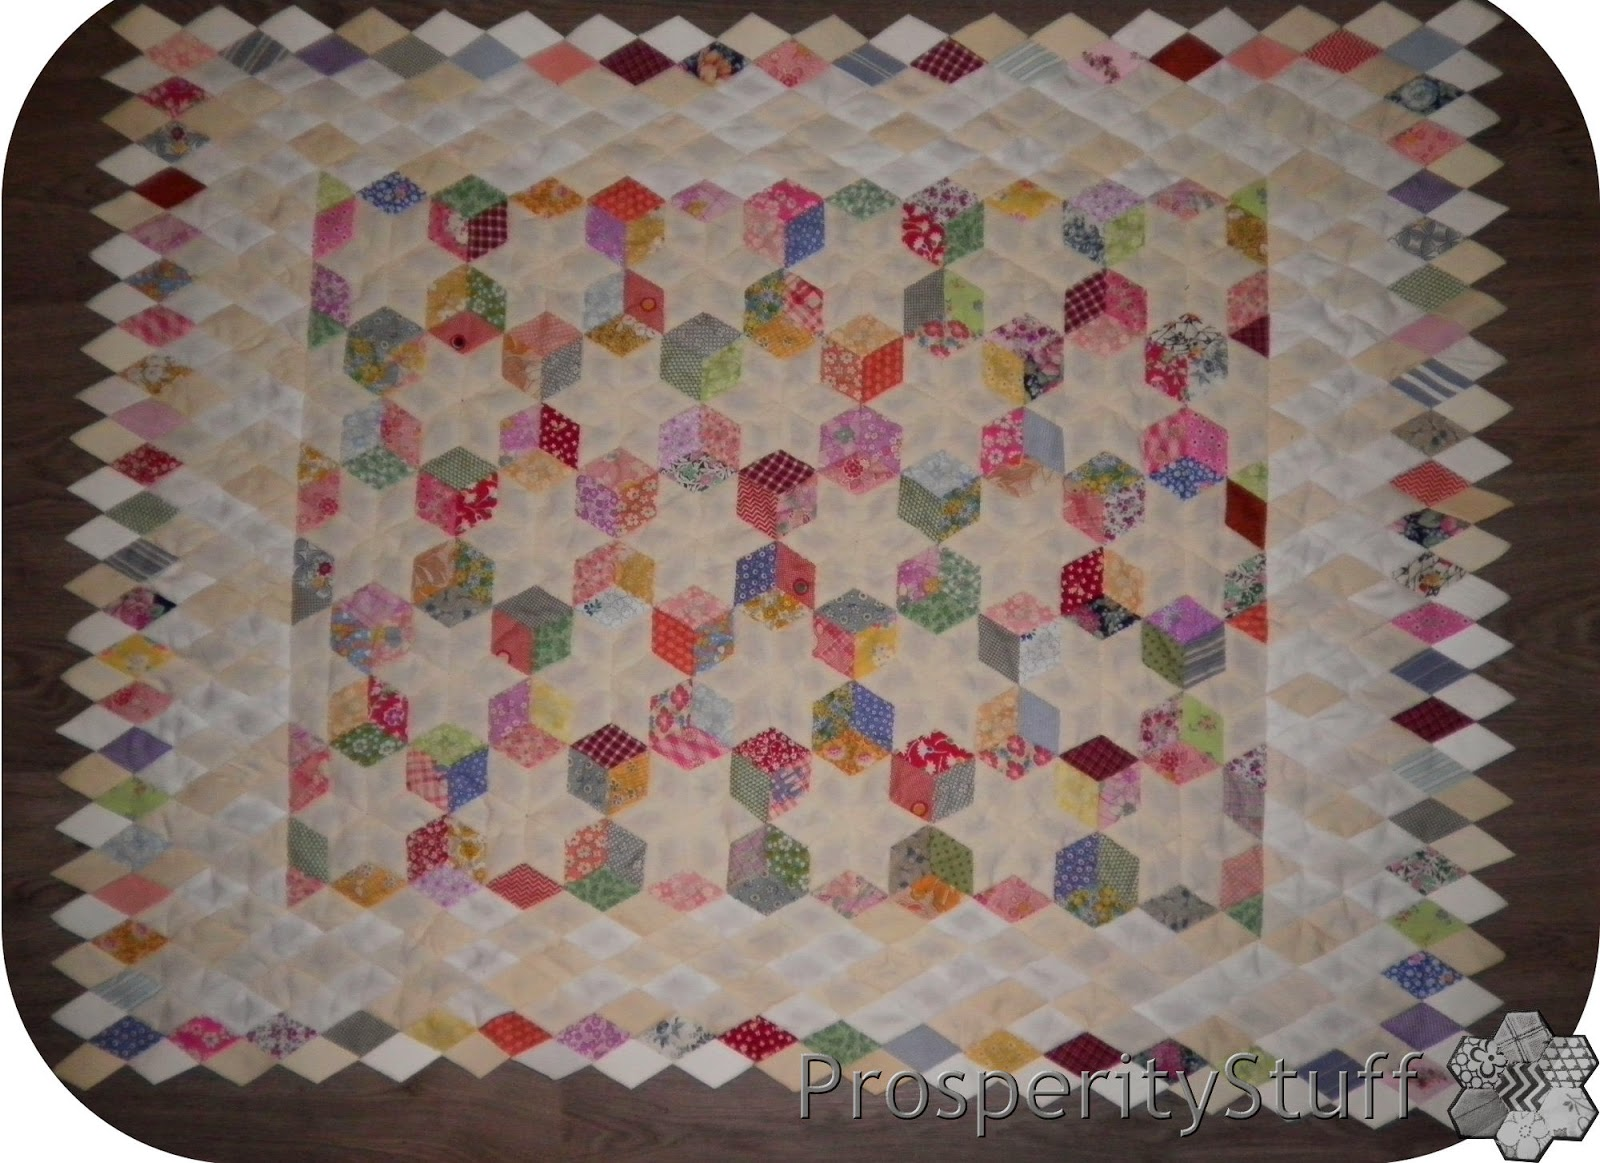 ProsperityStuff Quilts: English Paper Piecing - progress milestone